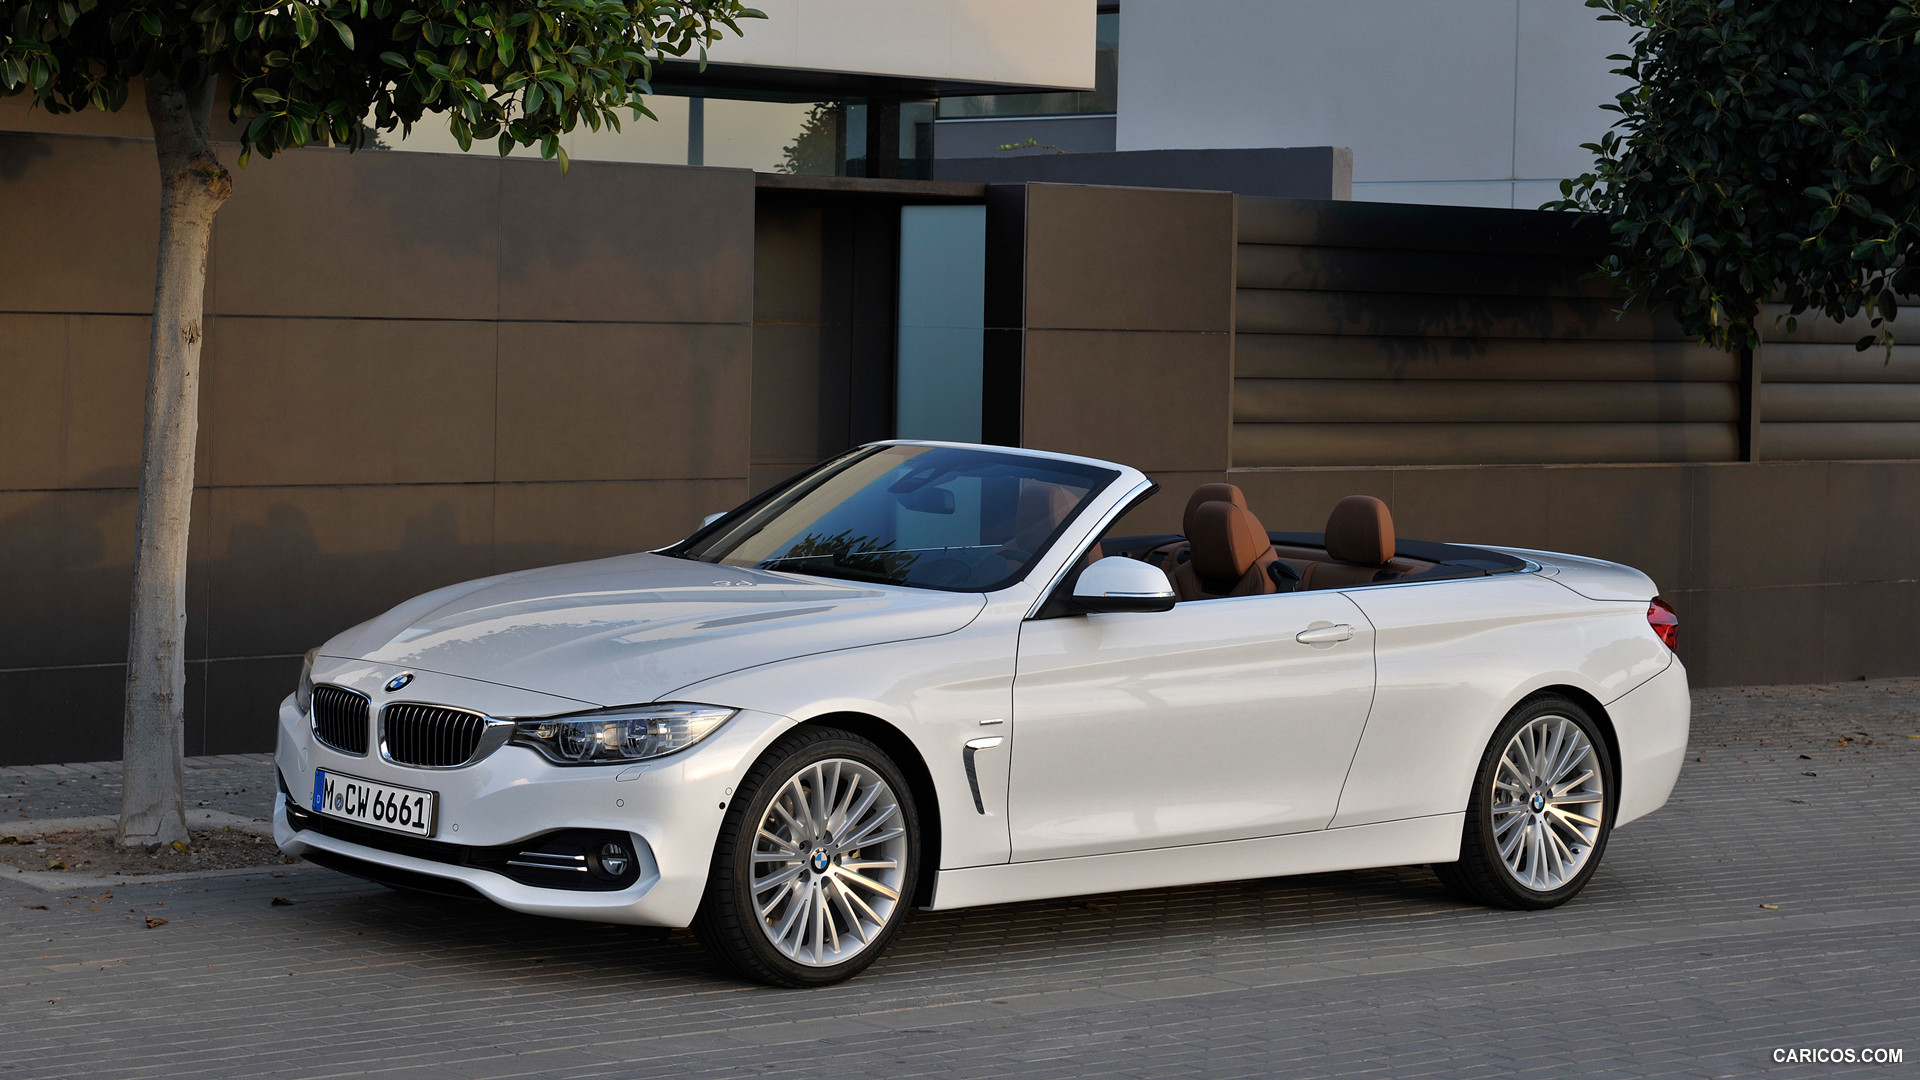 HQ 2014 BMW 4-Series Convertible Wallpapers | File 497.02Kb